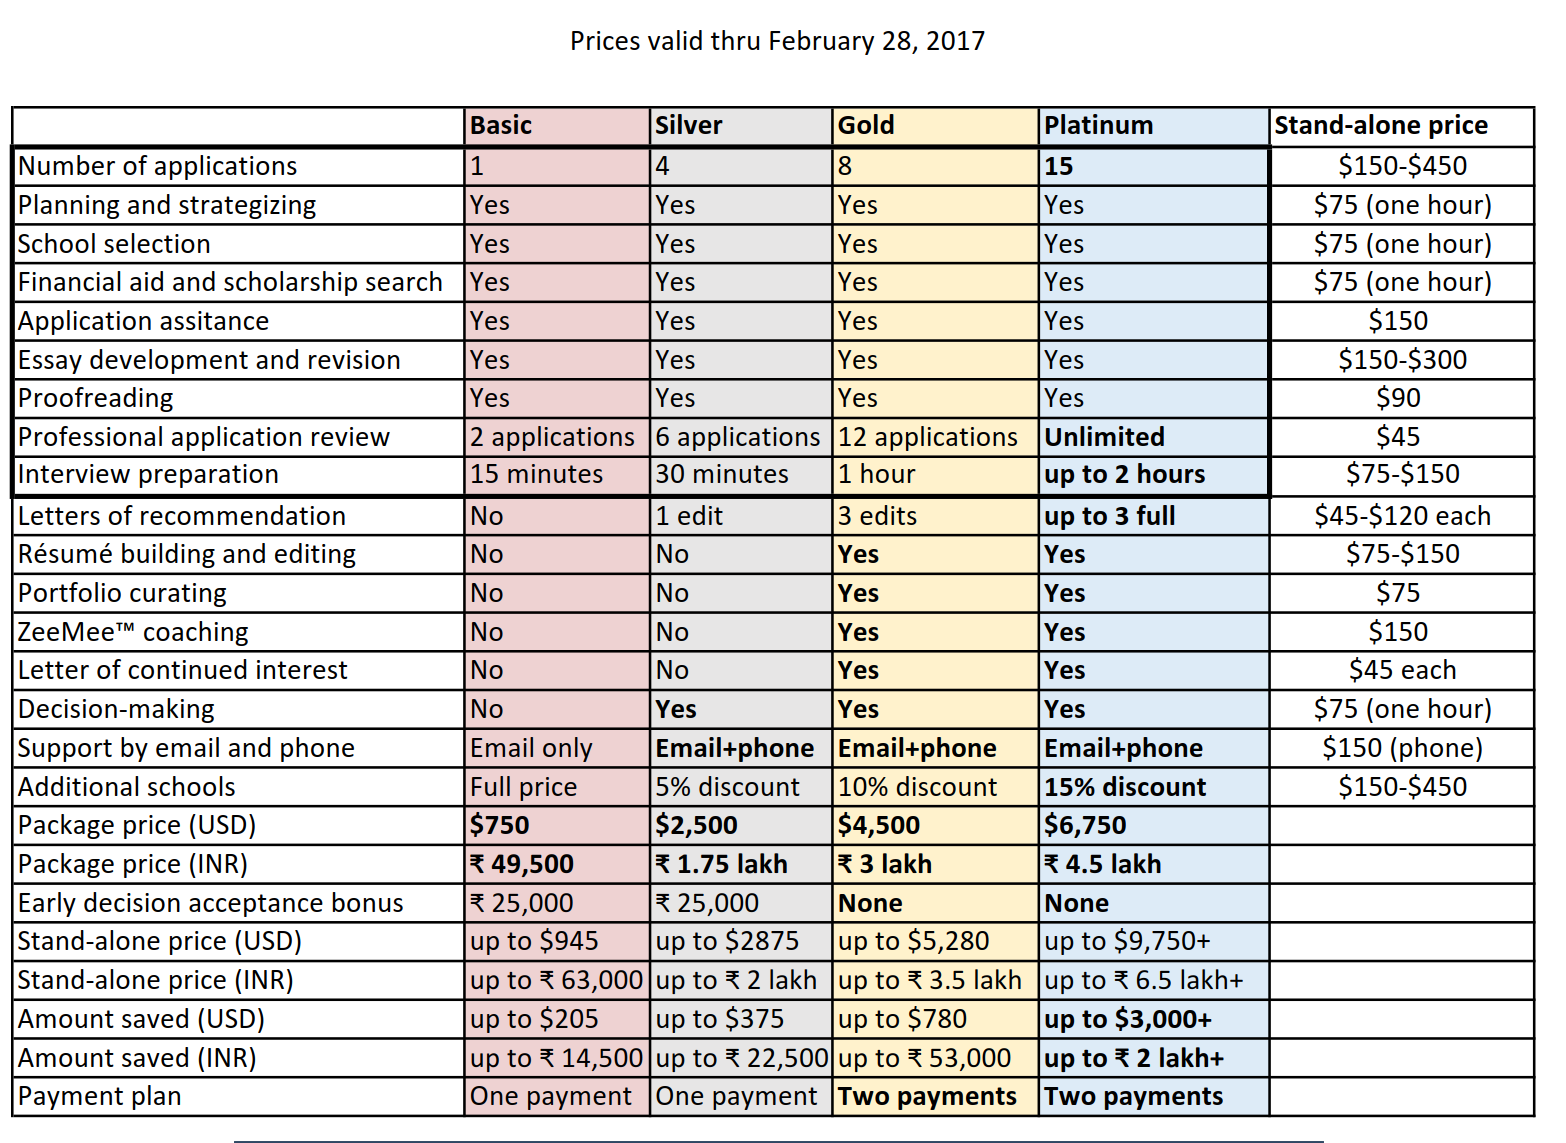 Prices for IvyAchievement services February 2017